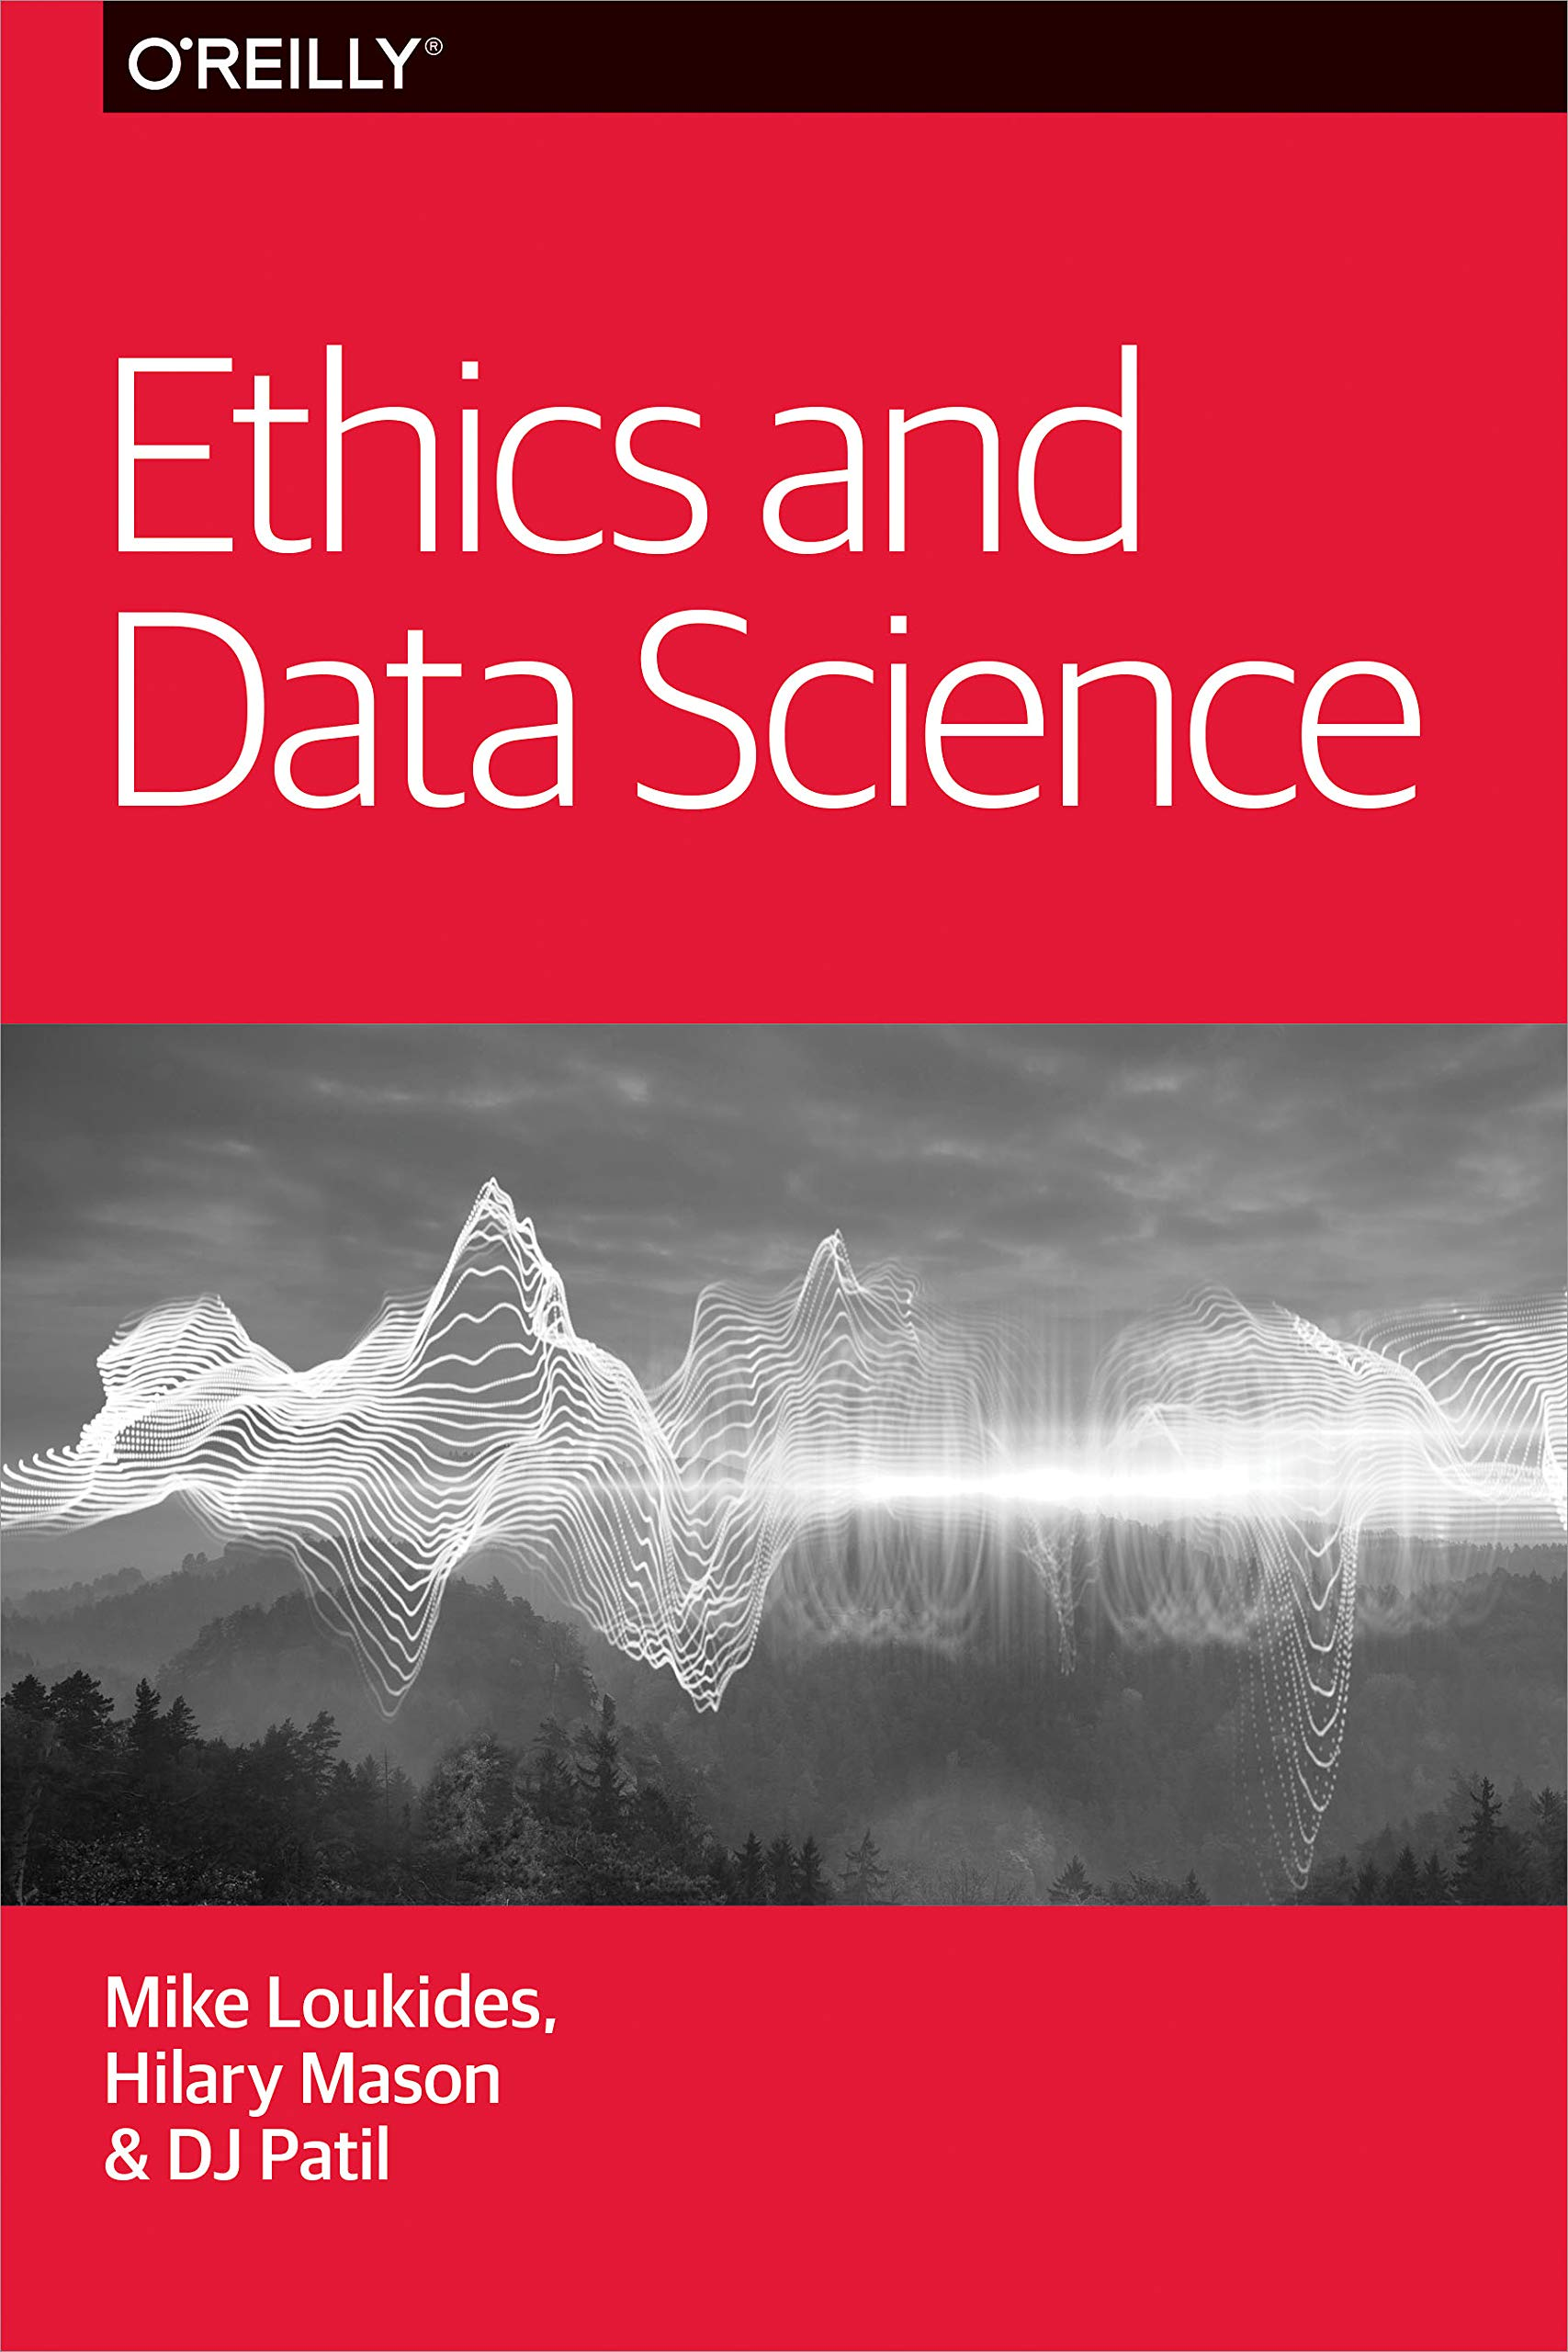 Download Ethics And Data Science (English Edition) 